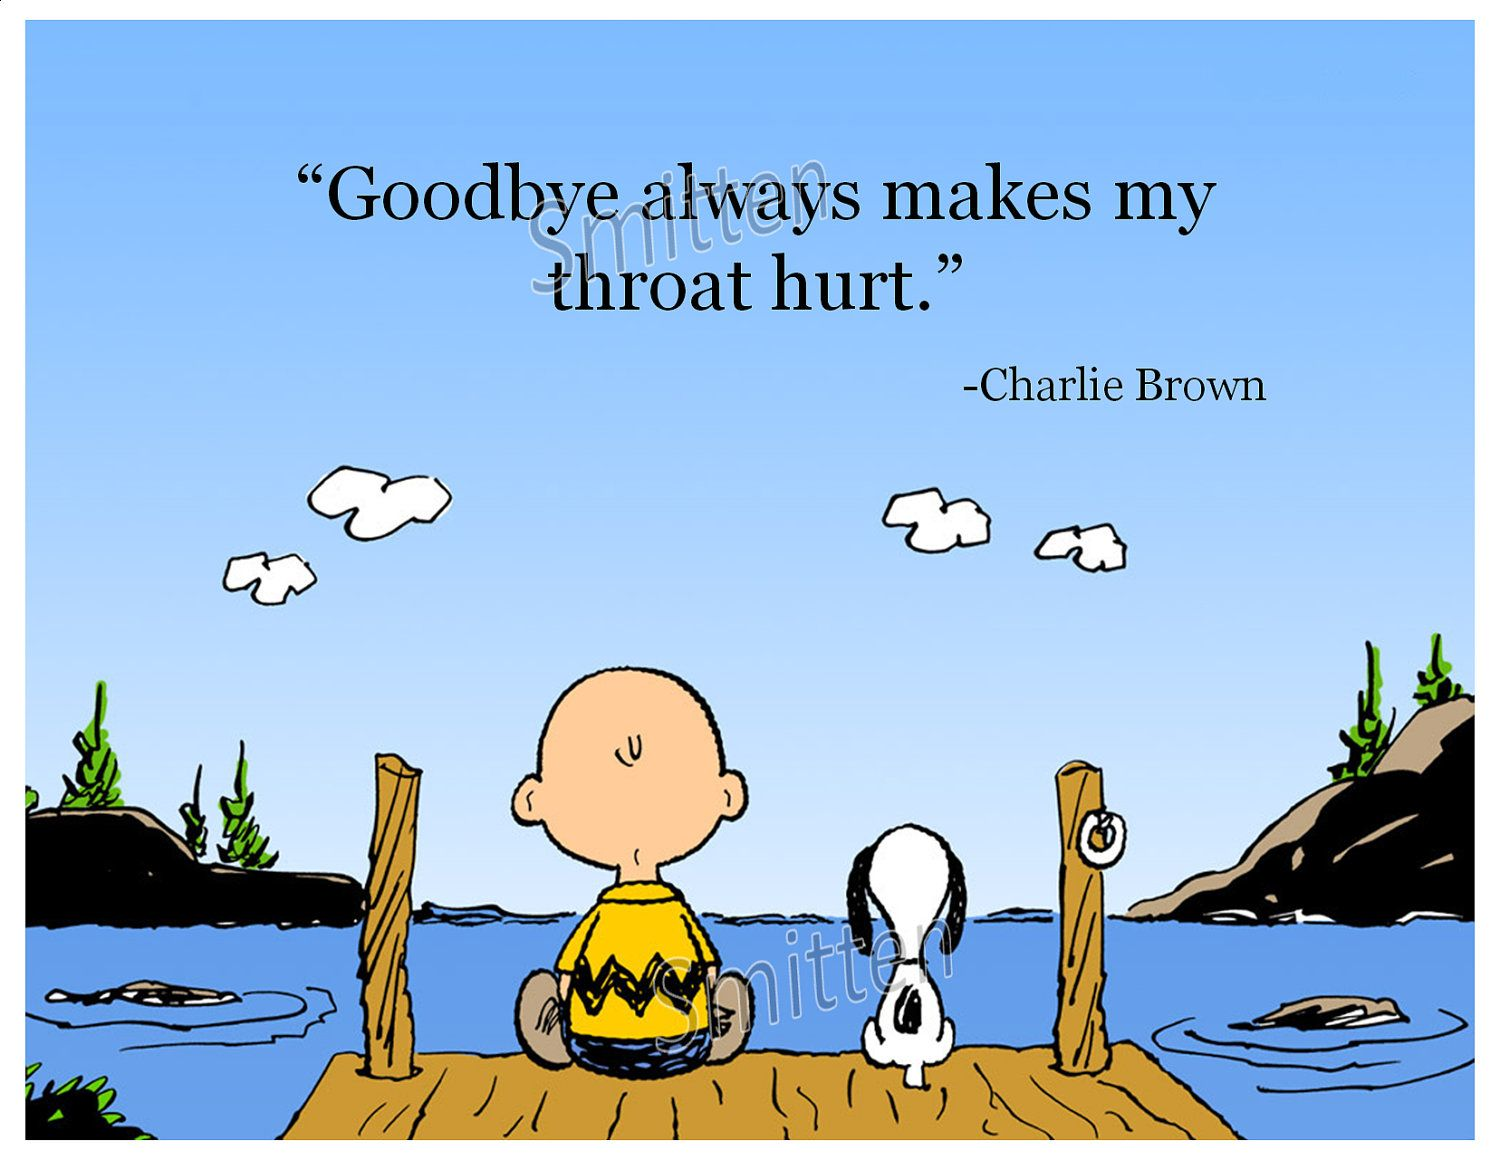 Perfect deployment quote for anyone who has had to endure those types of goodbyes multiple times. It never gets easy but always worth the wait!